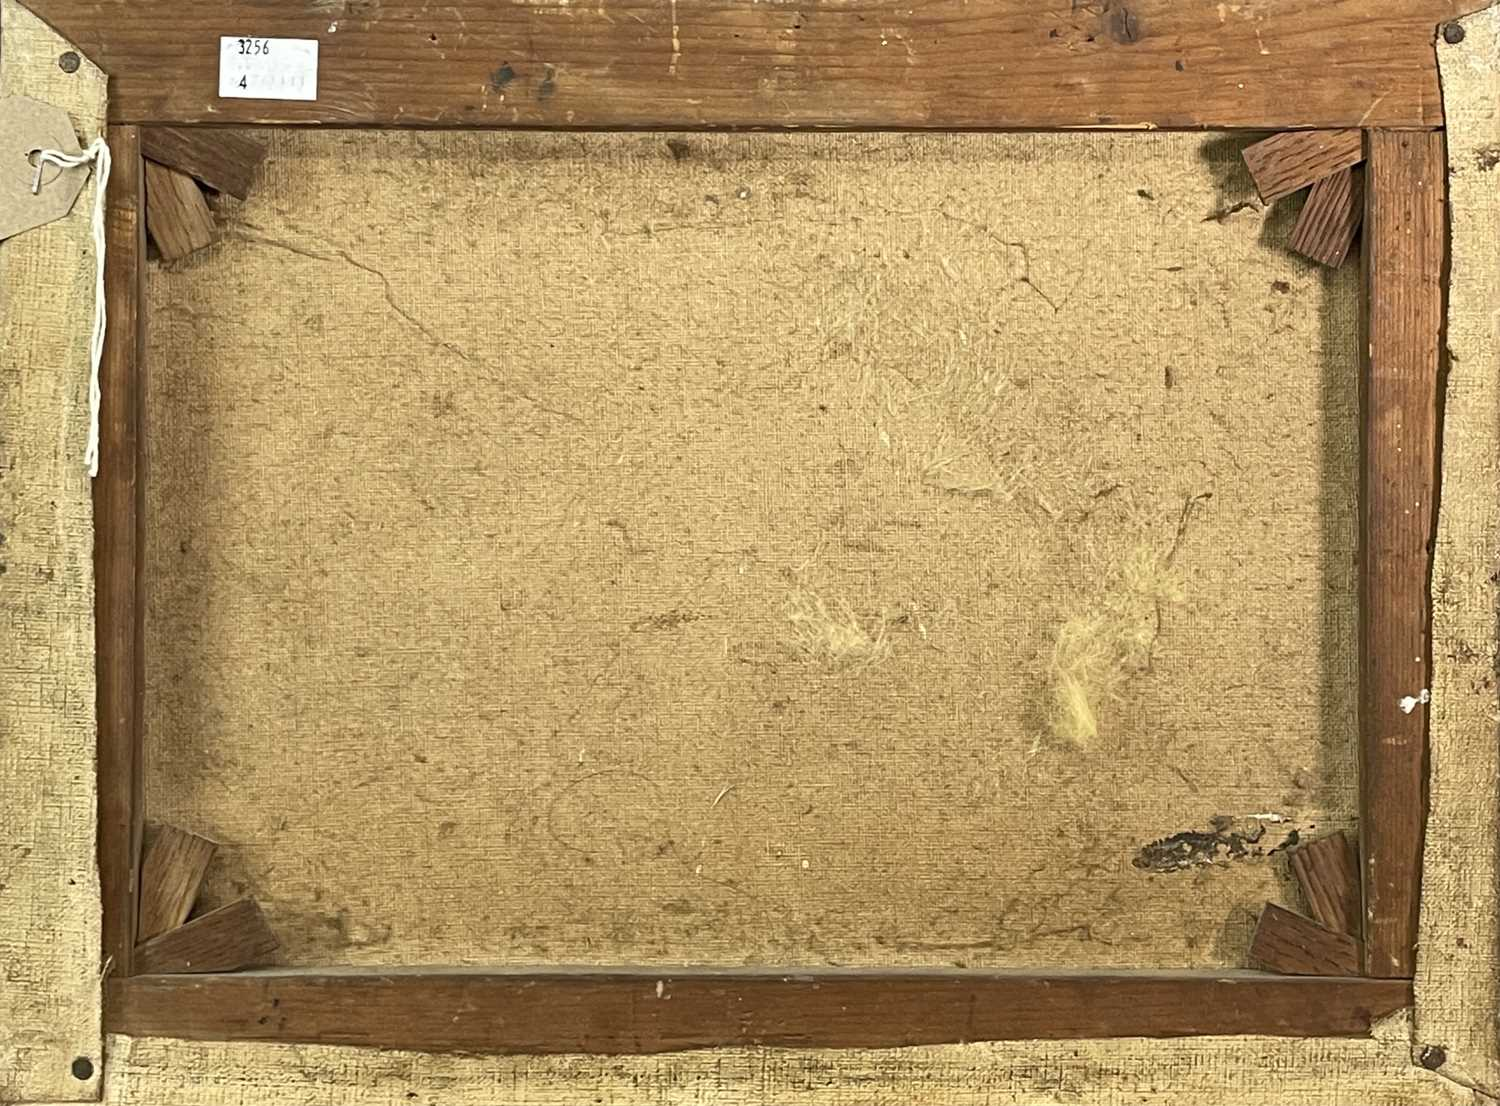 Eileen IZARDSt Ives RooftopsOil on canvas Signed 31 x 41cm - Image 2 of 2